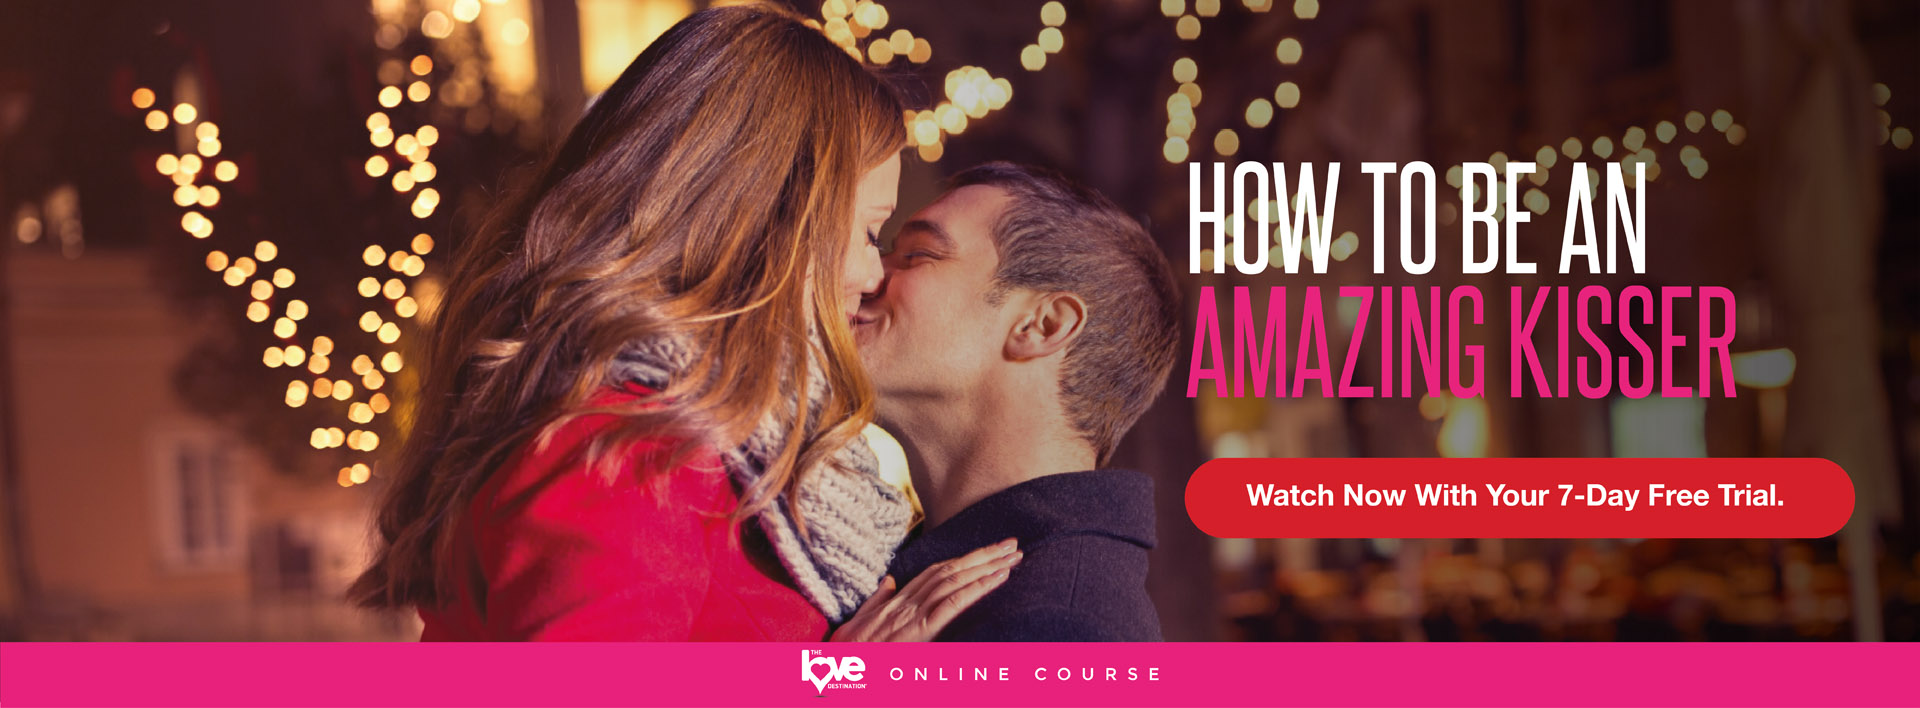 1-how-to-be-an-amazing-kisser